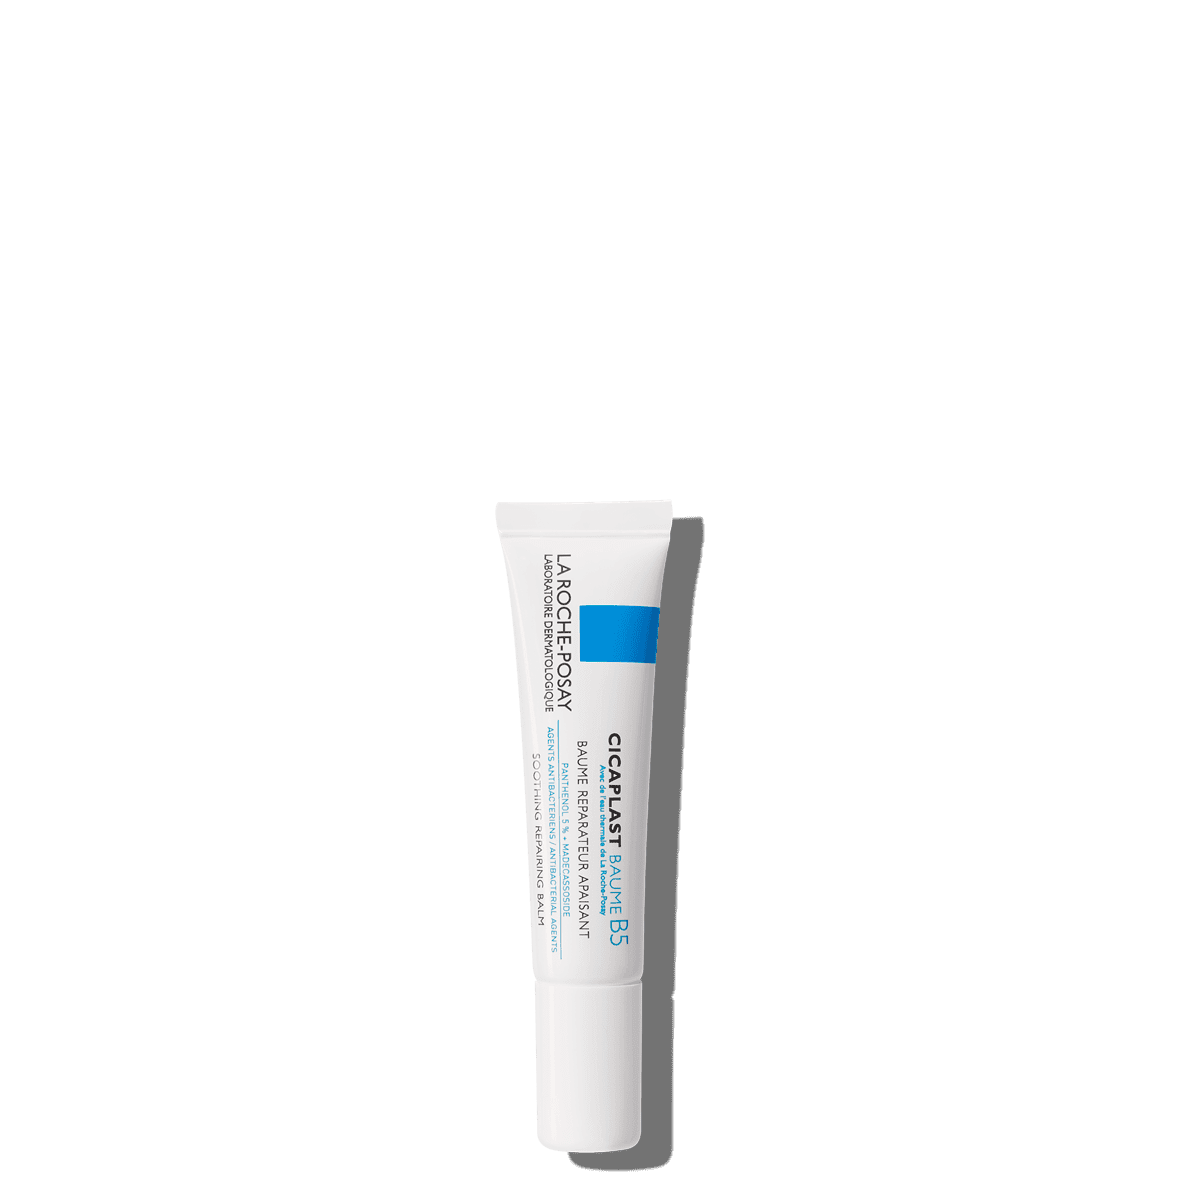 La Roche Posay ProductPage Damaged Cicaplast Baume B5 15ml 33378724187